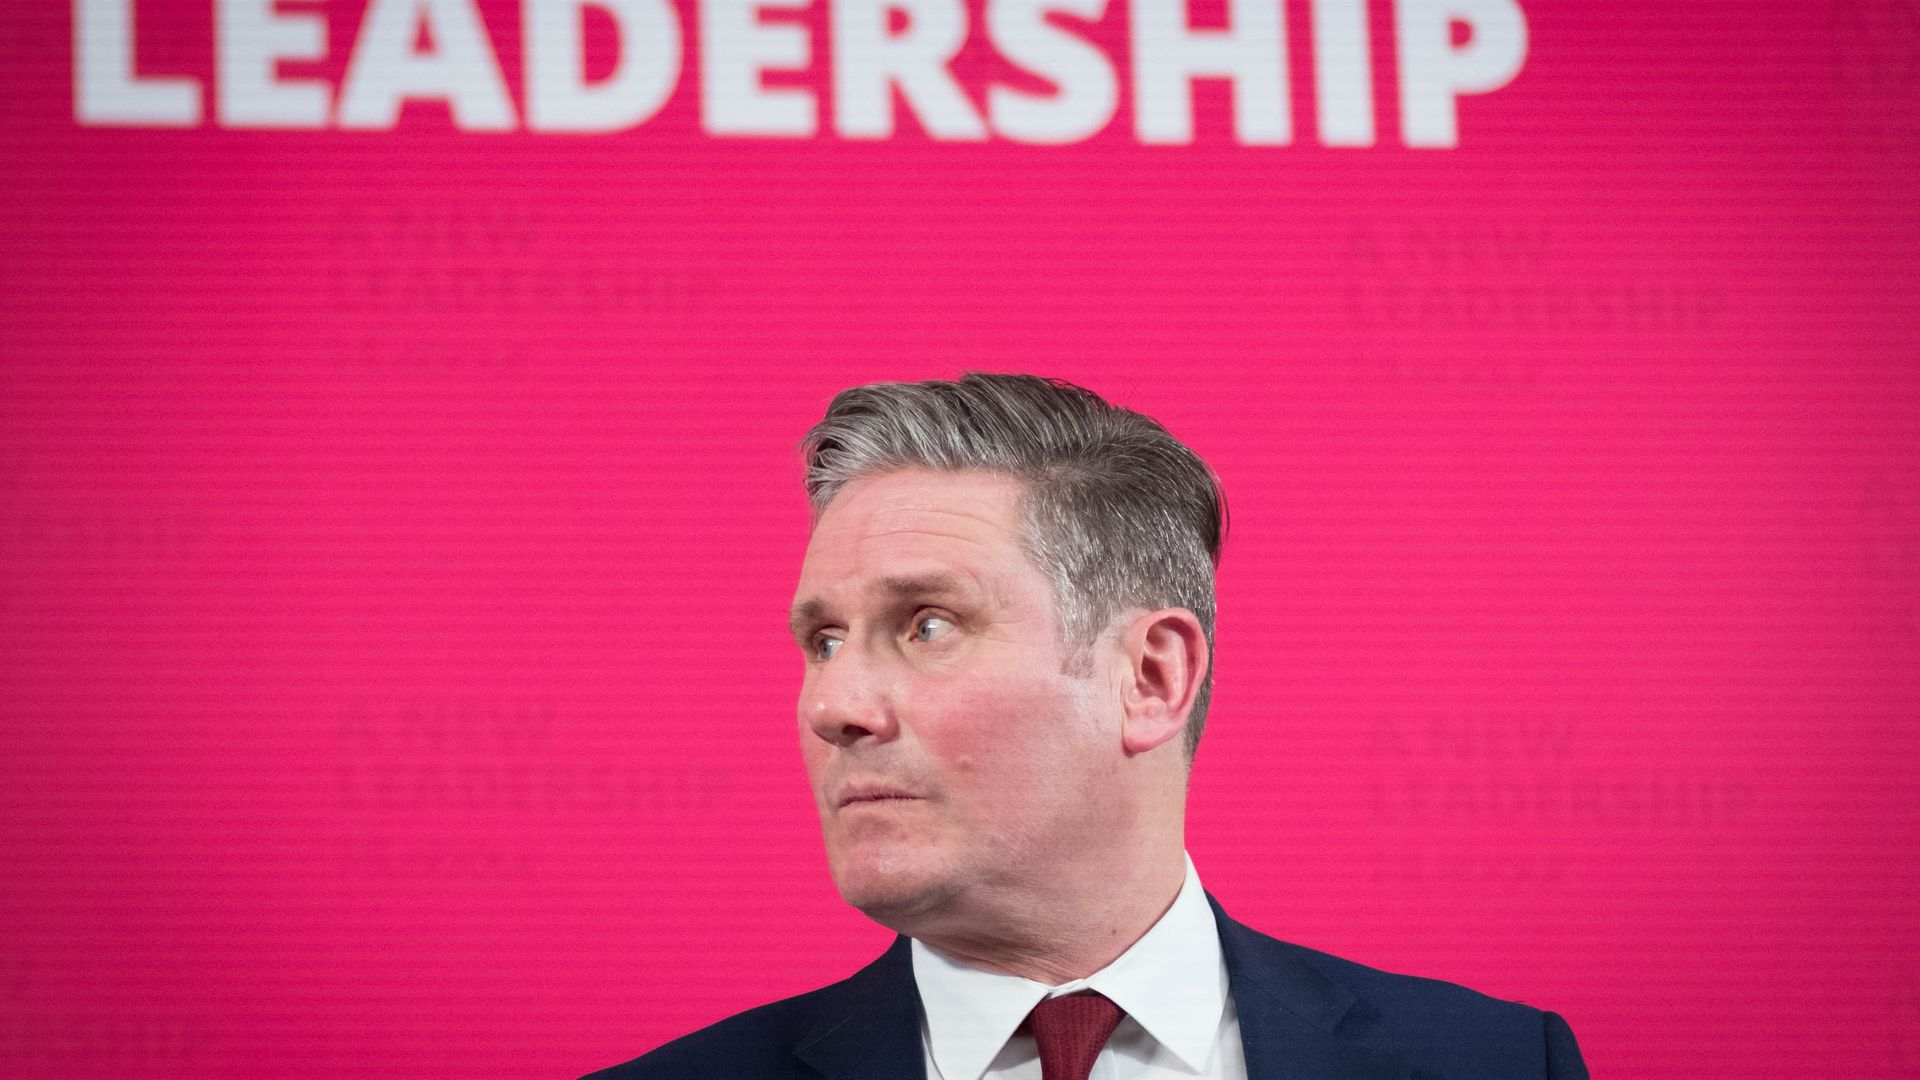 Labour leader Sir Keir Starmer delivers a virtual speech - Credit: PA